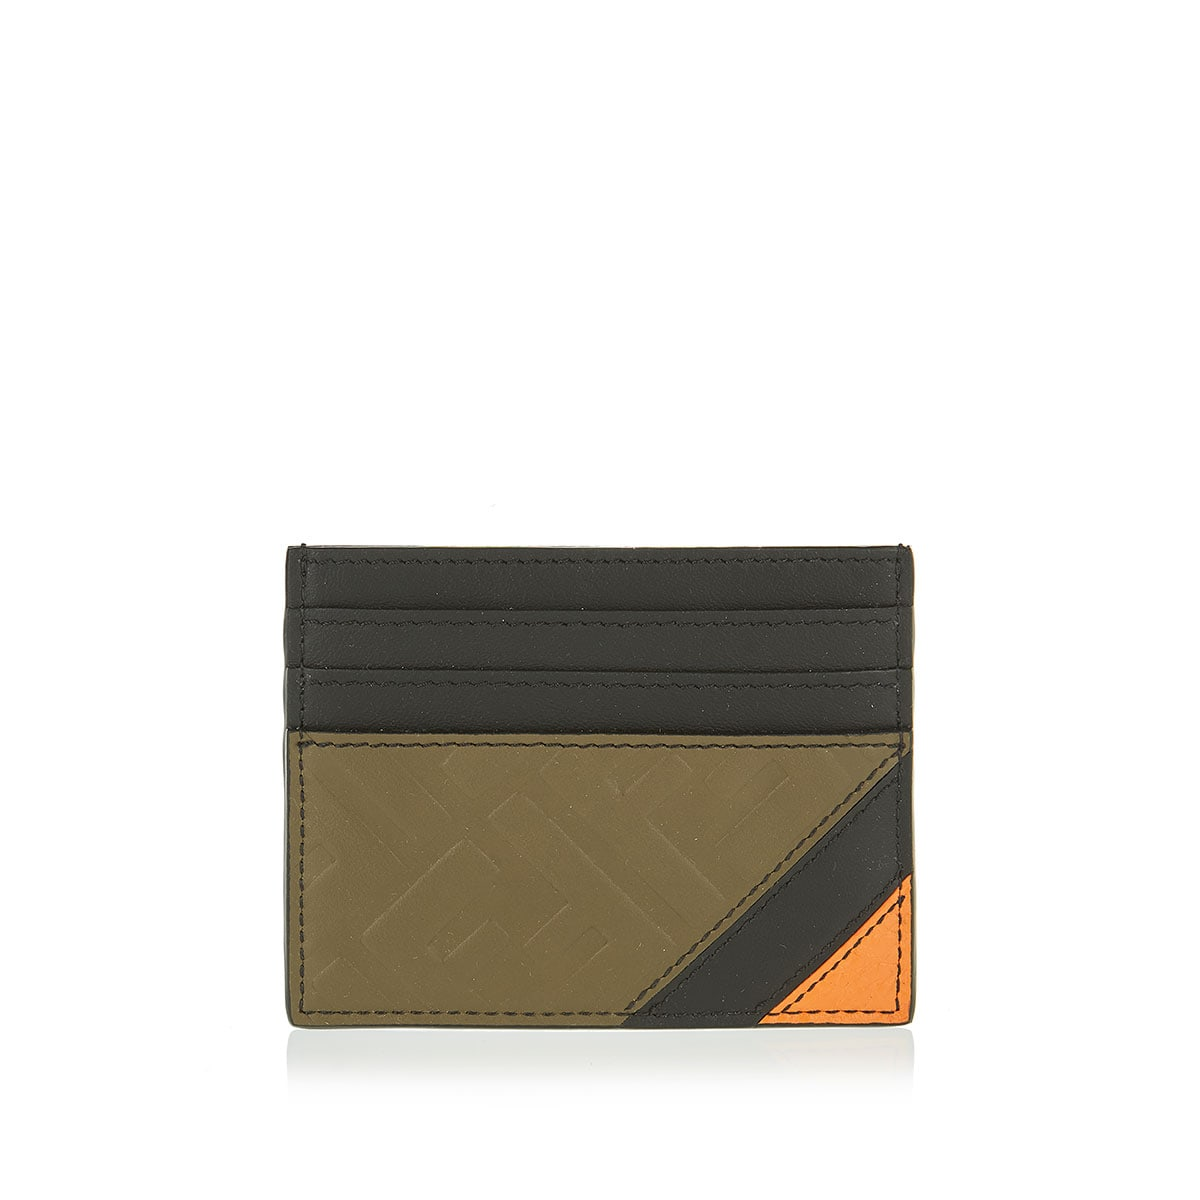 FF leather card case